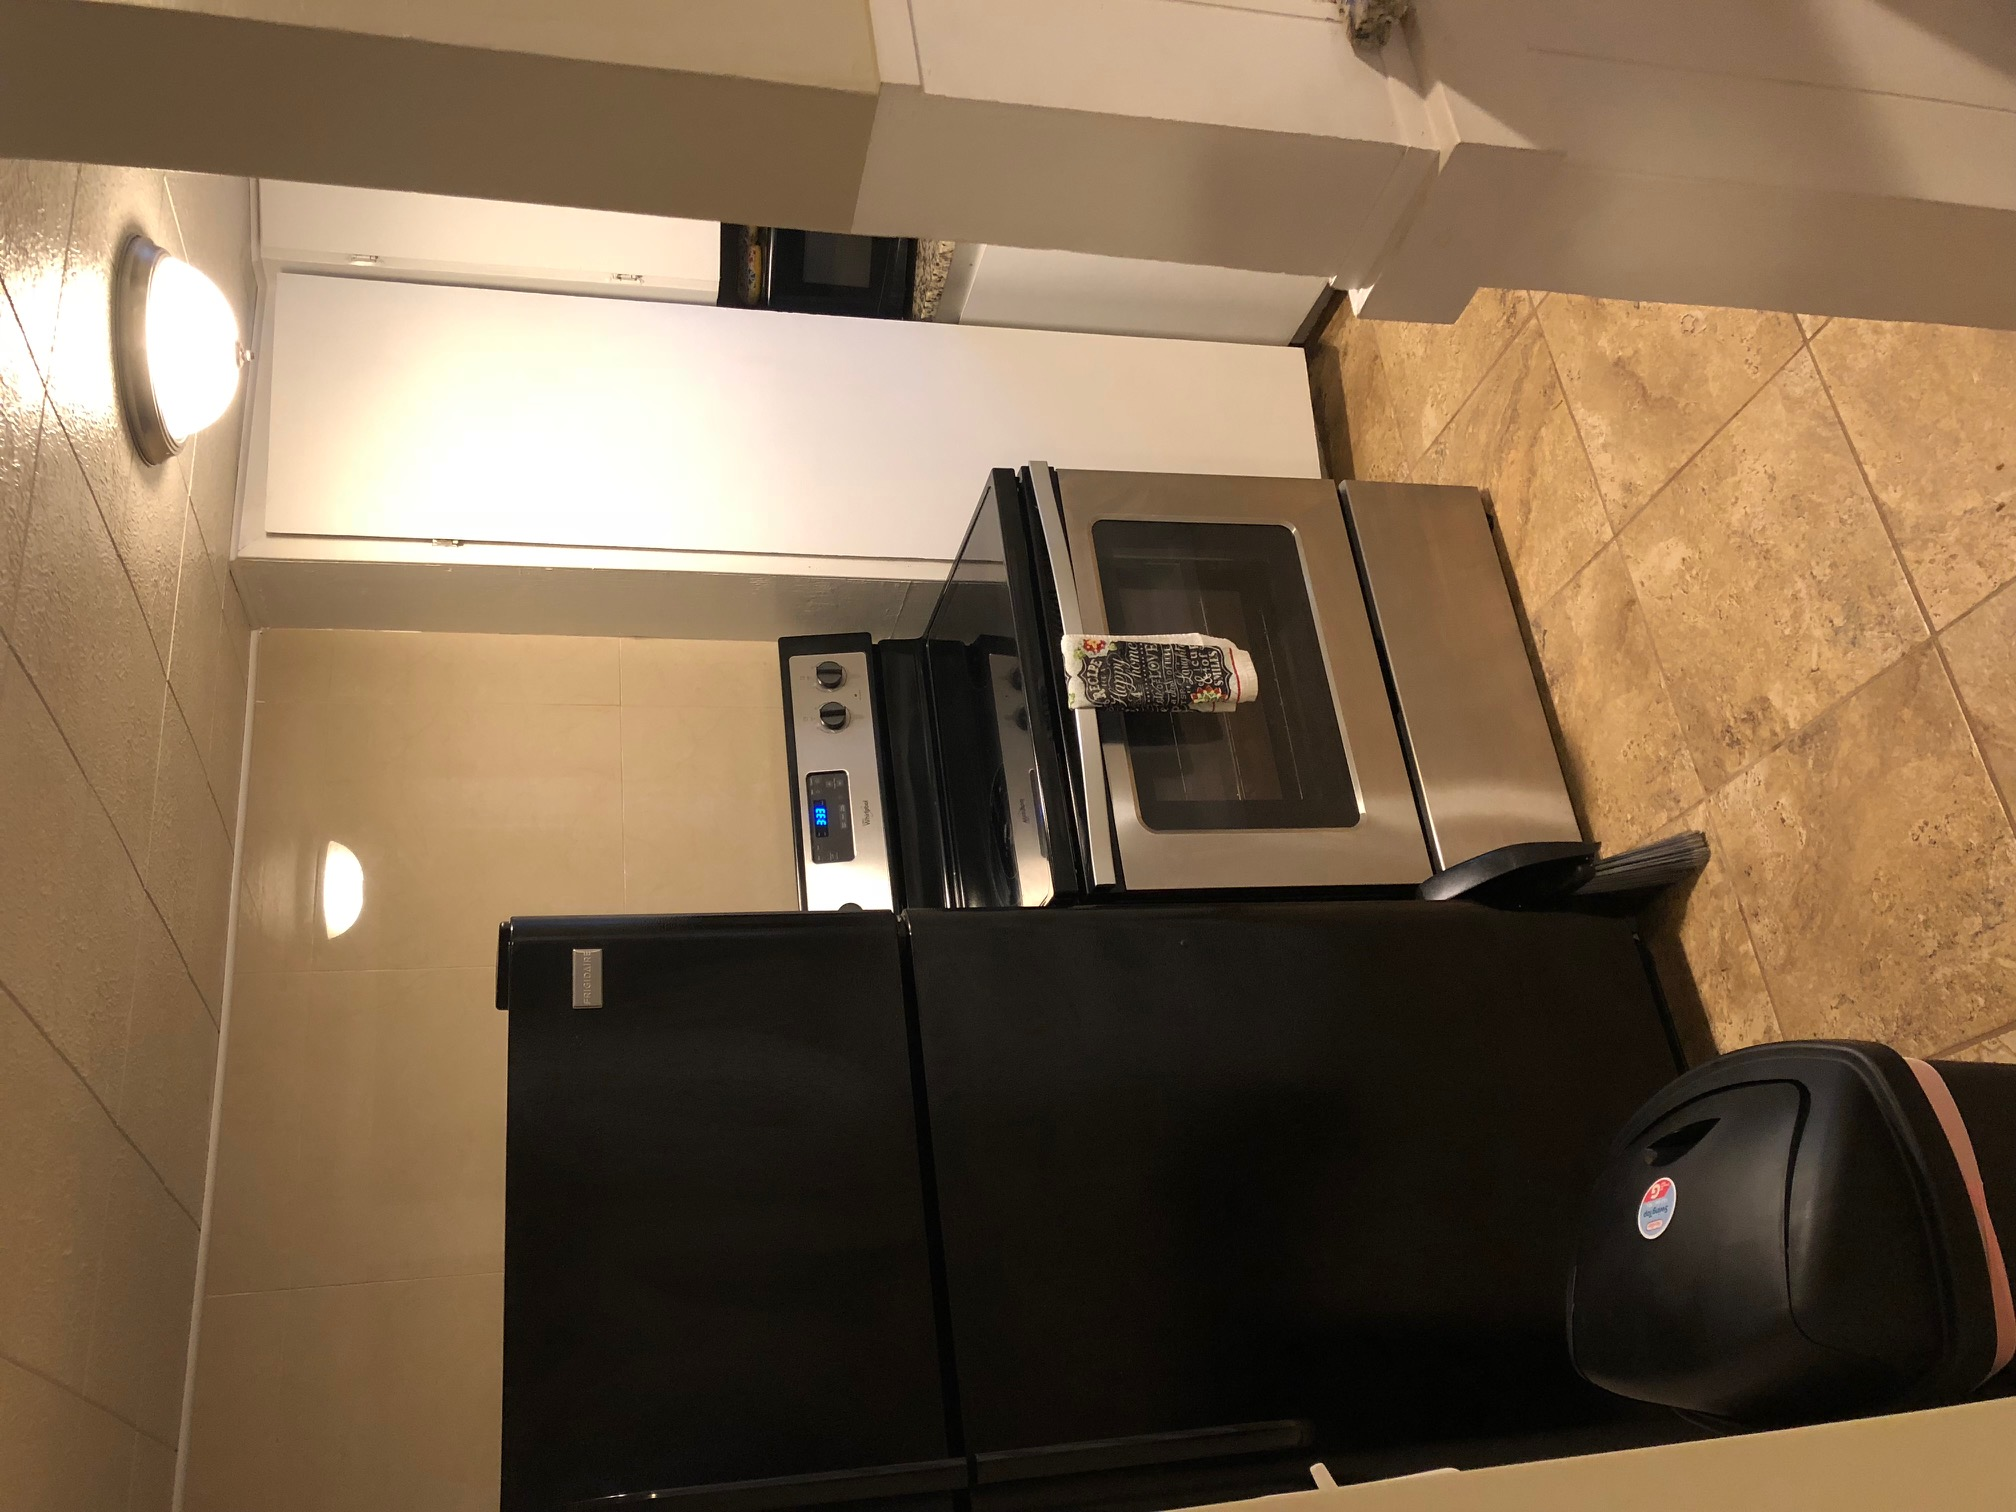 Full Size Appliances Stove, Refrigerator, Microwave, Coffee Pot